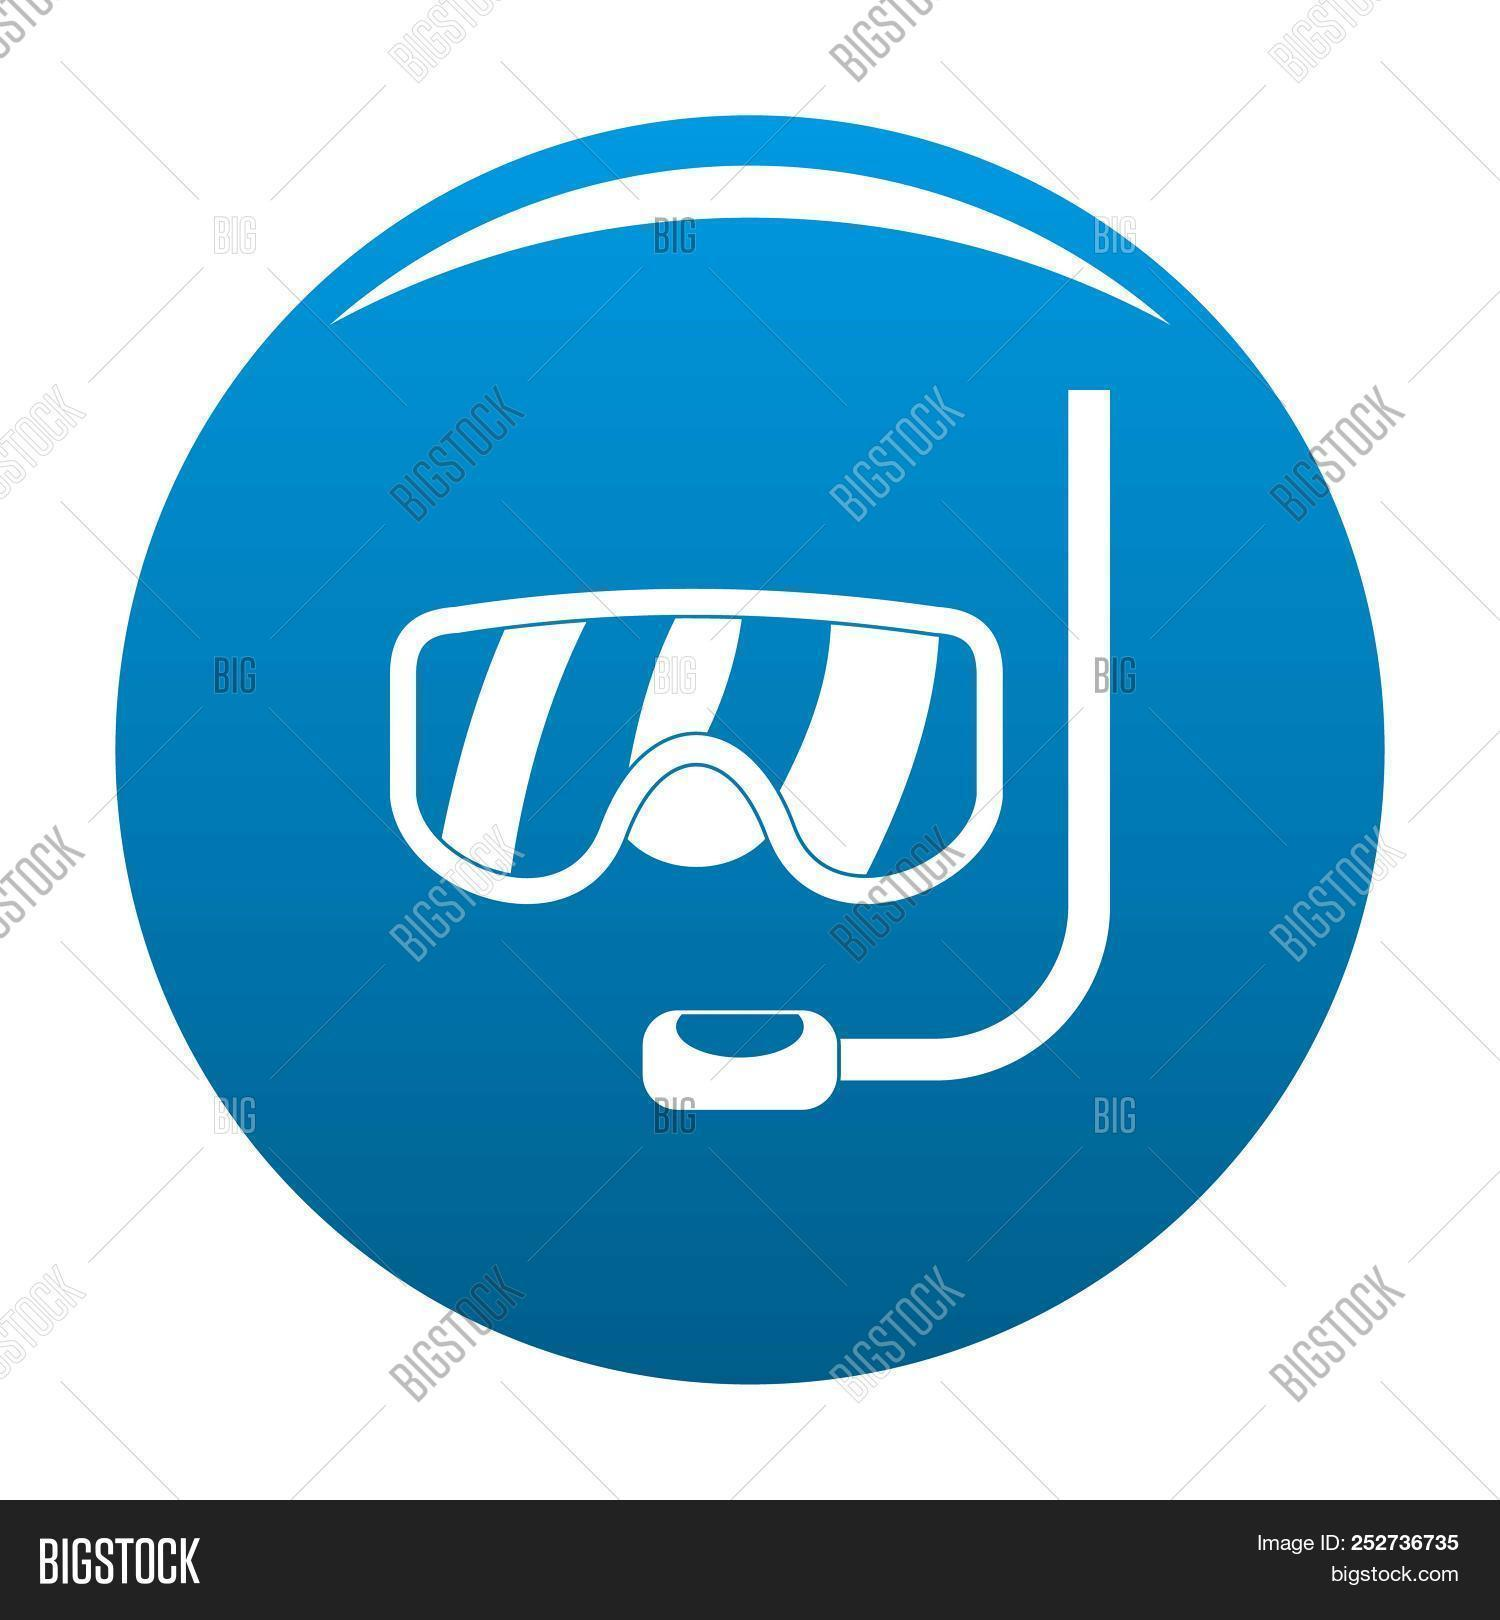 beach,blue,bright,color,deep,dive,equipment,fun,glasses,goggles,icon,illustration,isolated,leisure,logo,mask,modern,mouthpiece,object,ocean,scuba,sea,sign,simple,snorkel,sport,summer,symbol,tube,underwater,water